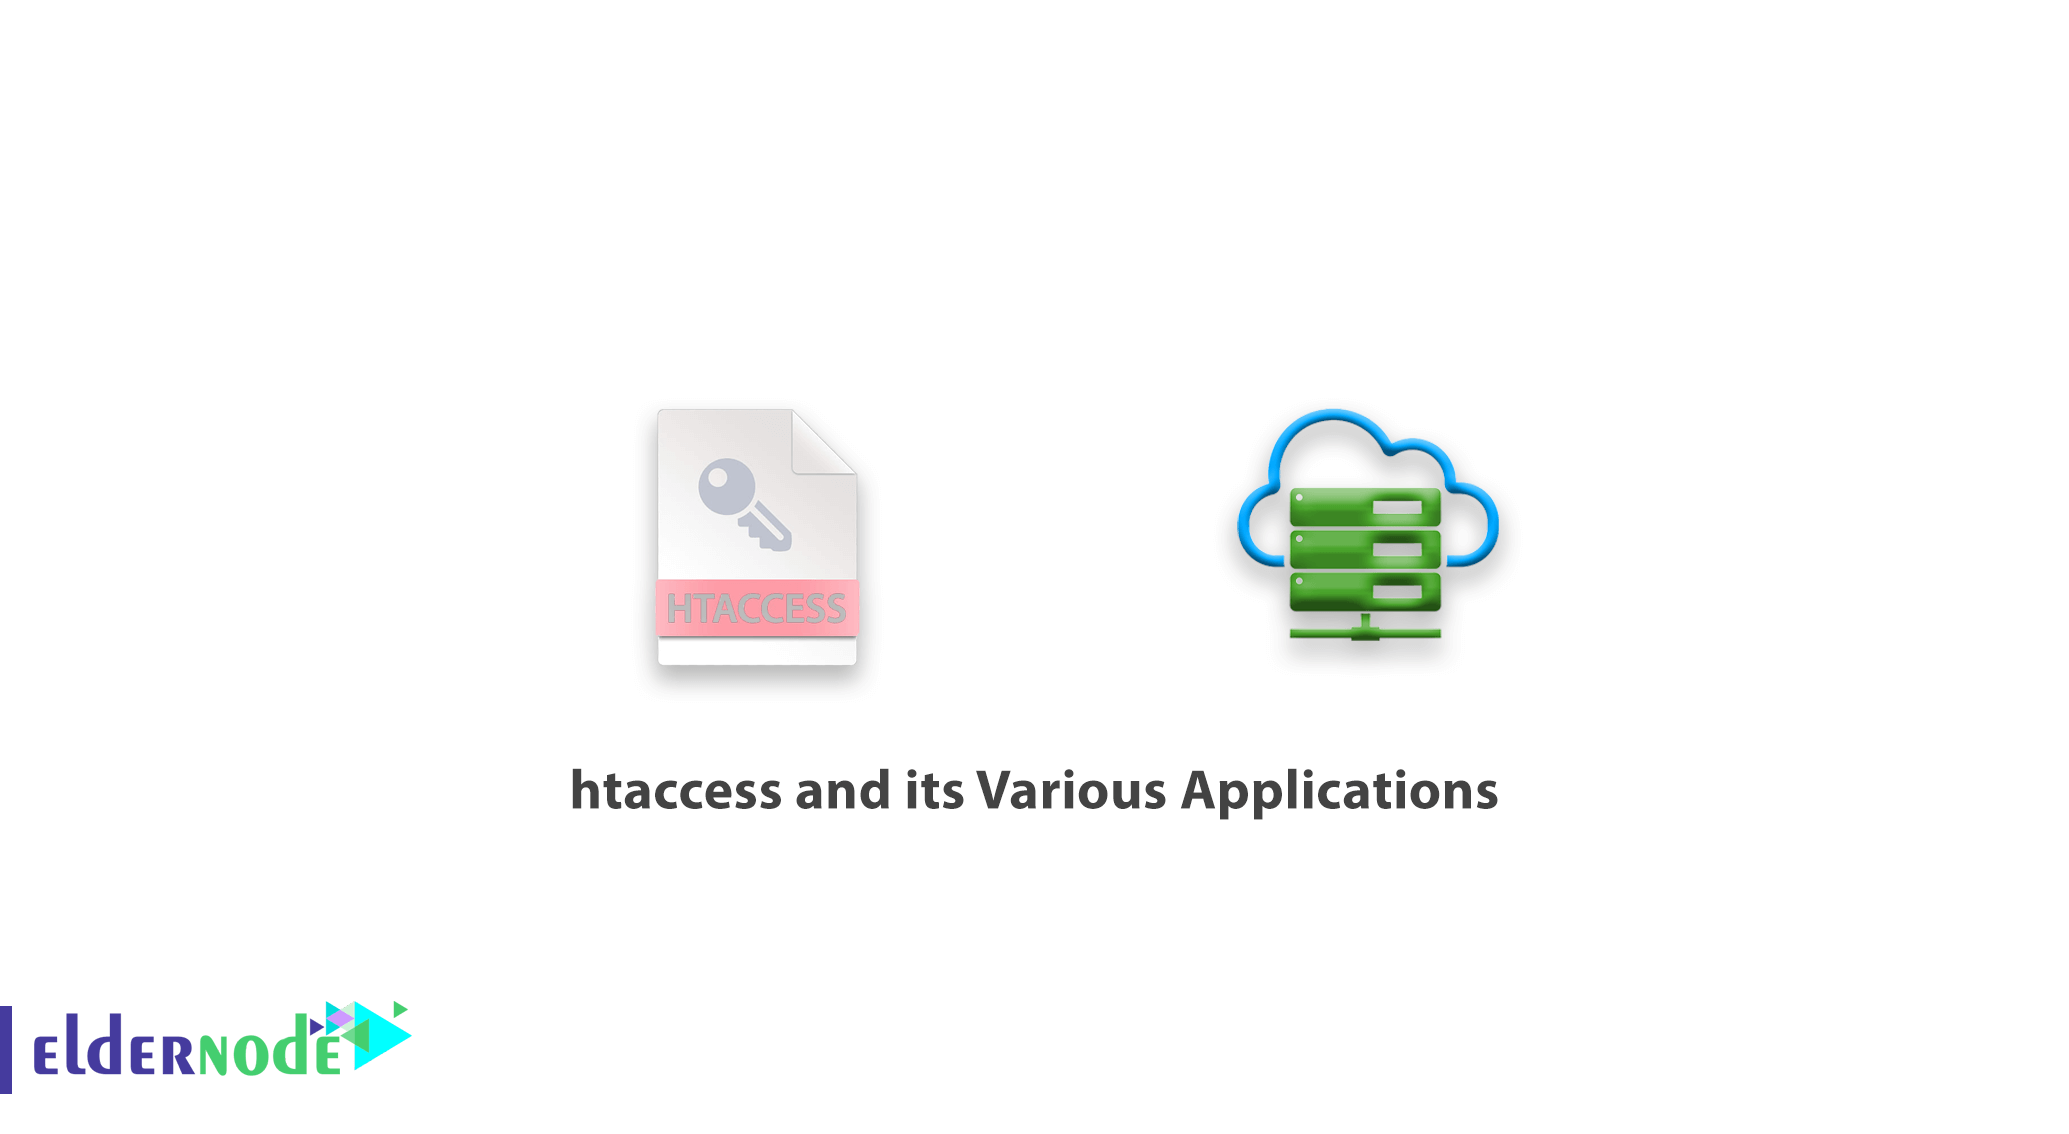 htaccess and its Various Applications